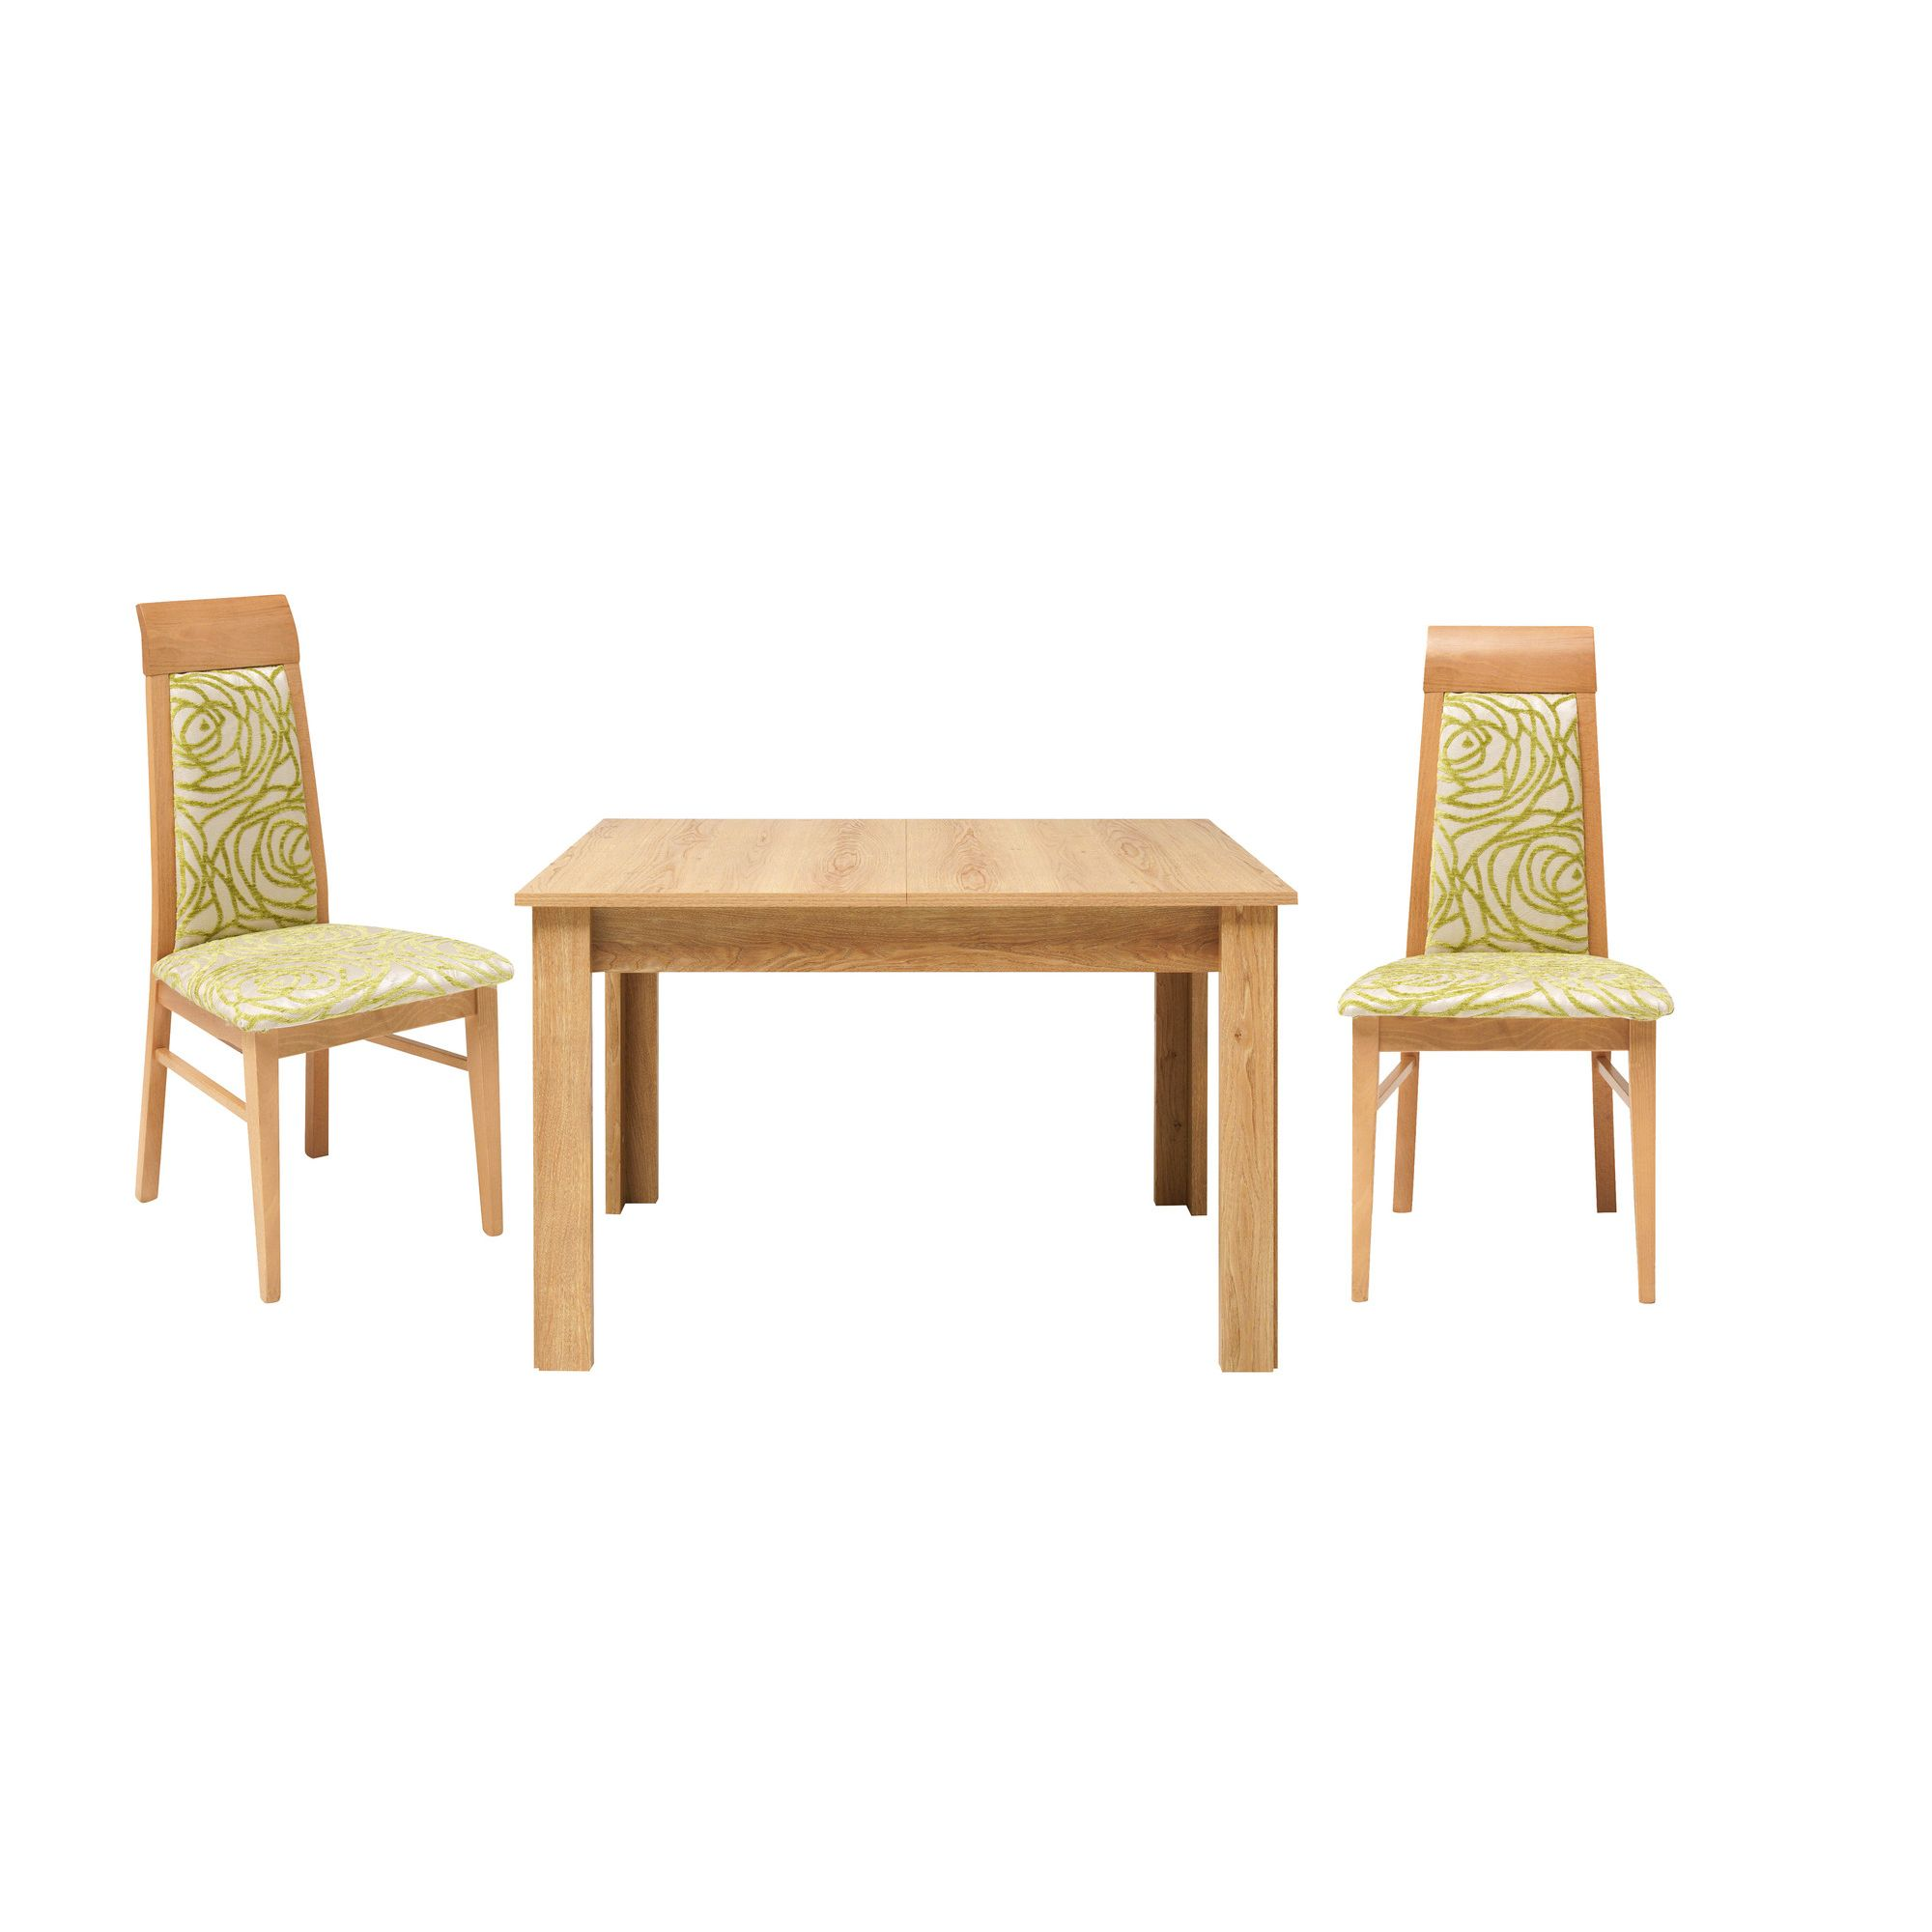 Caxton Darwin Dining Table Set with 6 Upholstered Chair in Chestnut at Tescos Direct